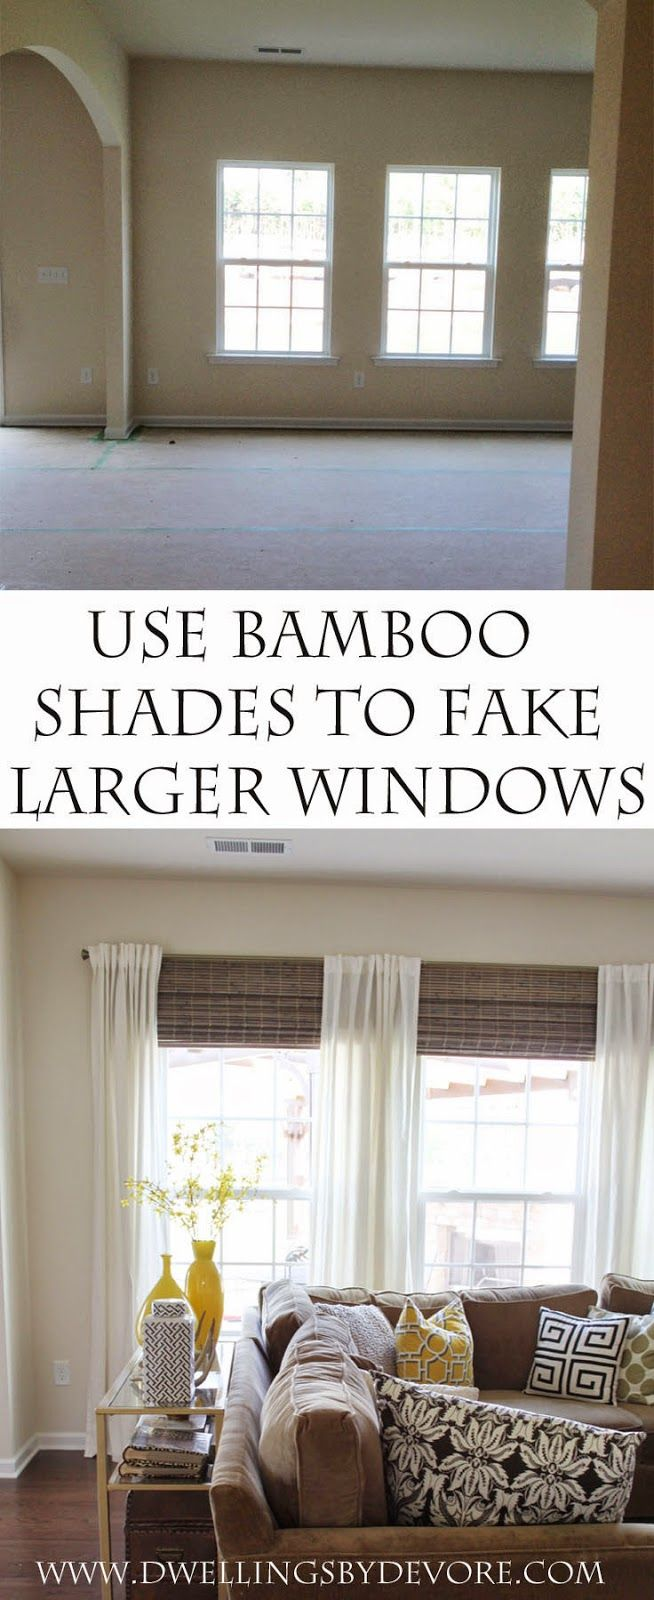 SO Smart   Use Bamboo Shades U0026 Strategically Placed Curtains To Make Your  Windows Look Larger